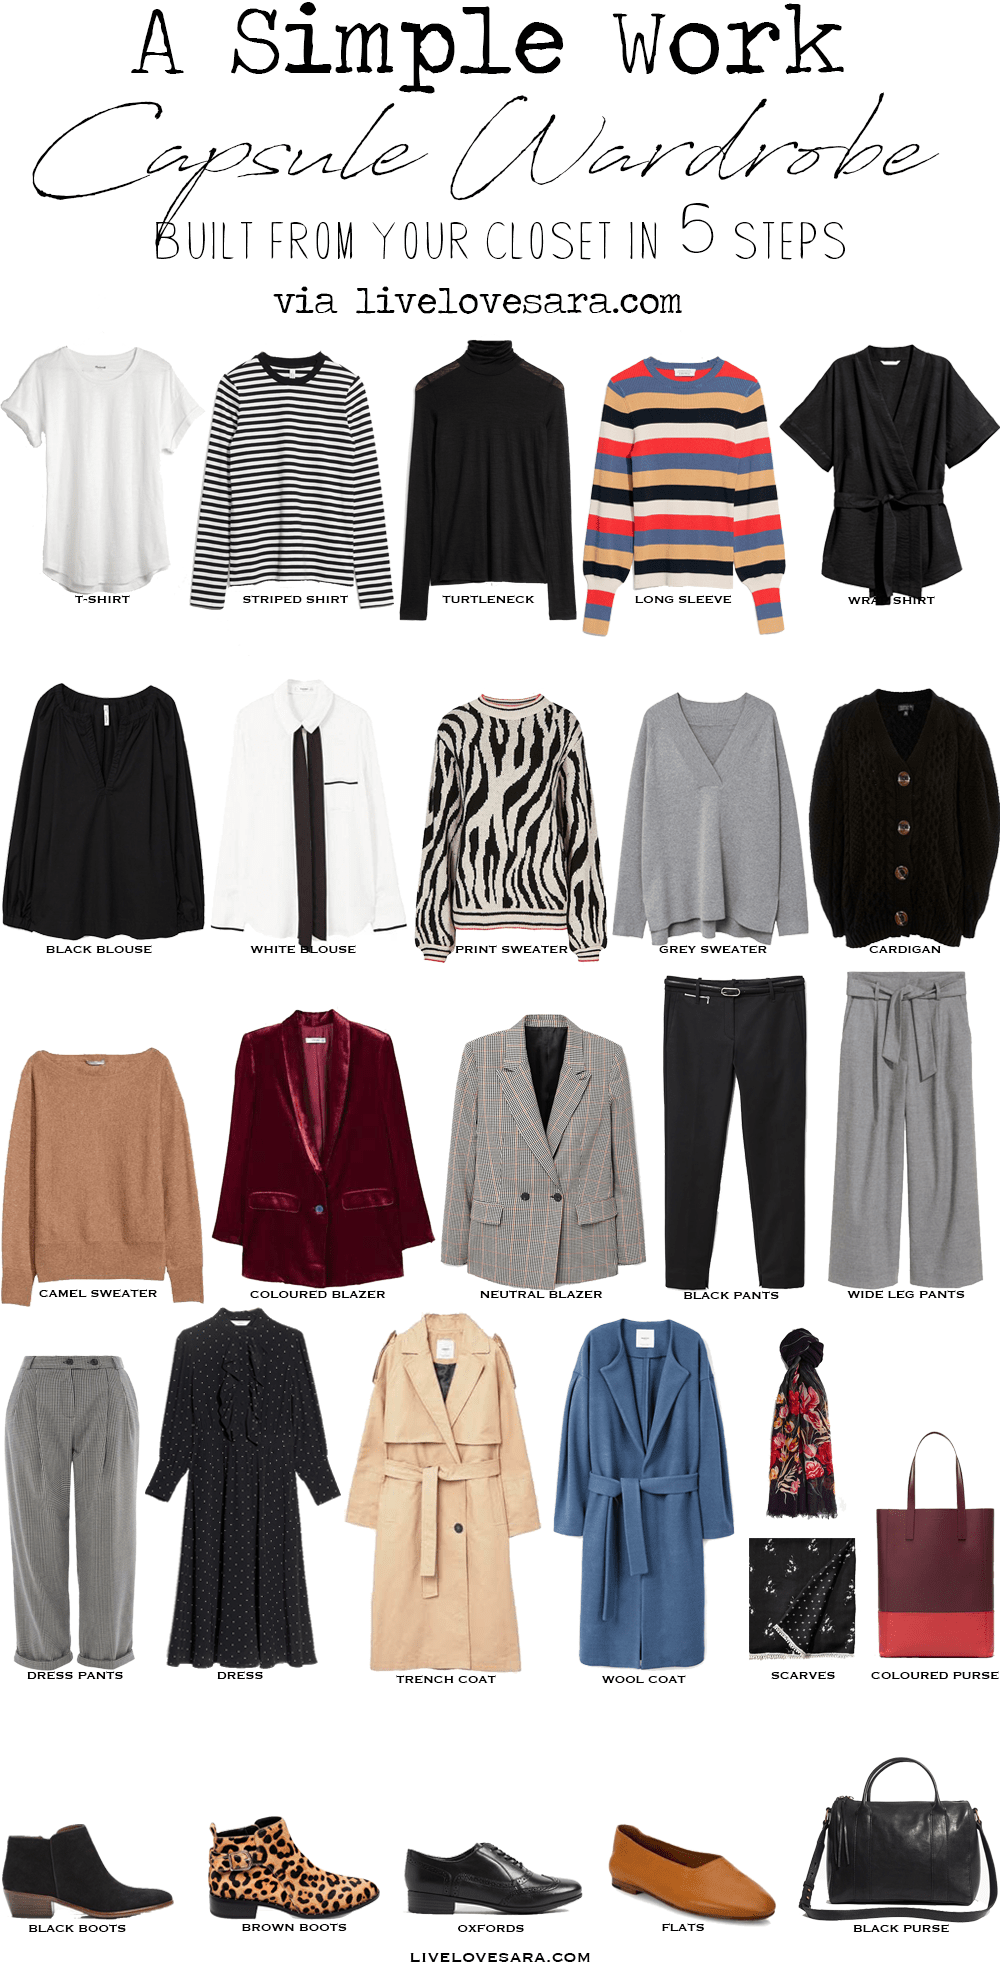 Buro Schrank Occasion A Teacher Capsule Wardrobe Built From Your Closet Second Addition